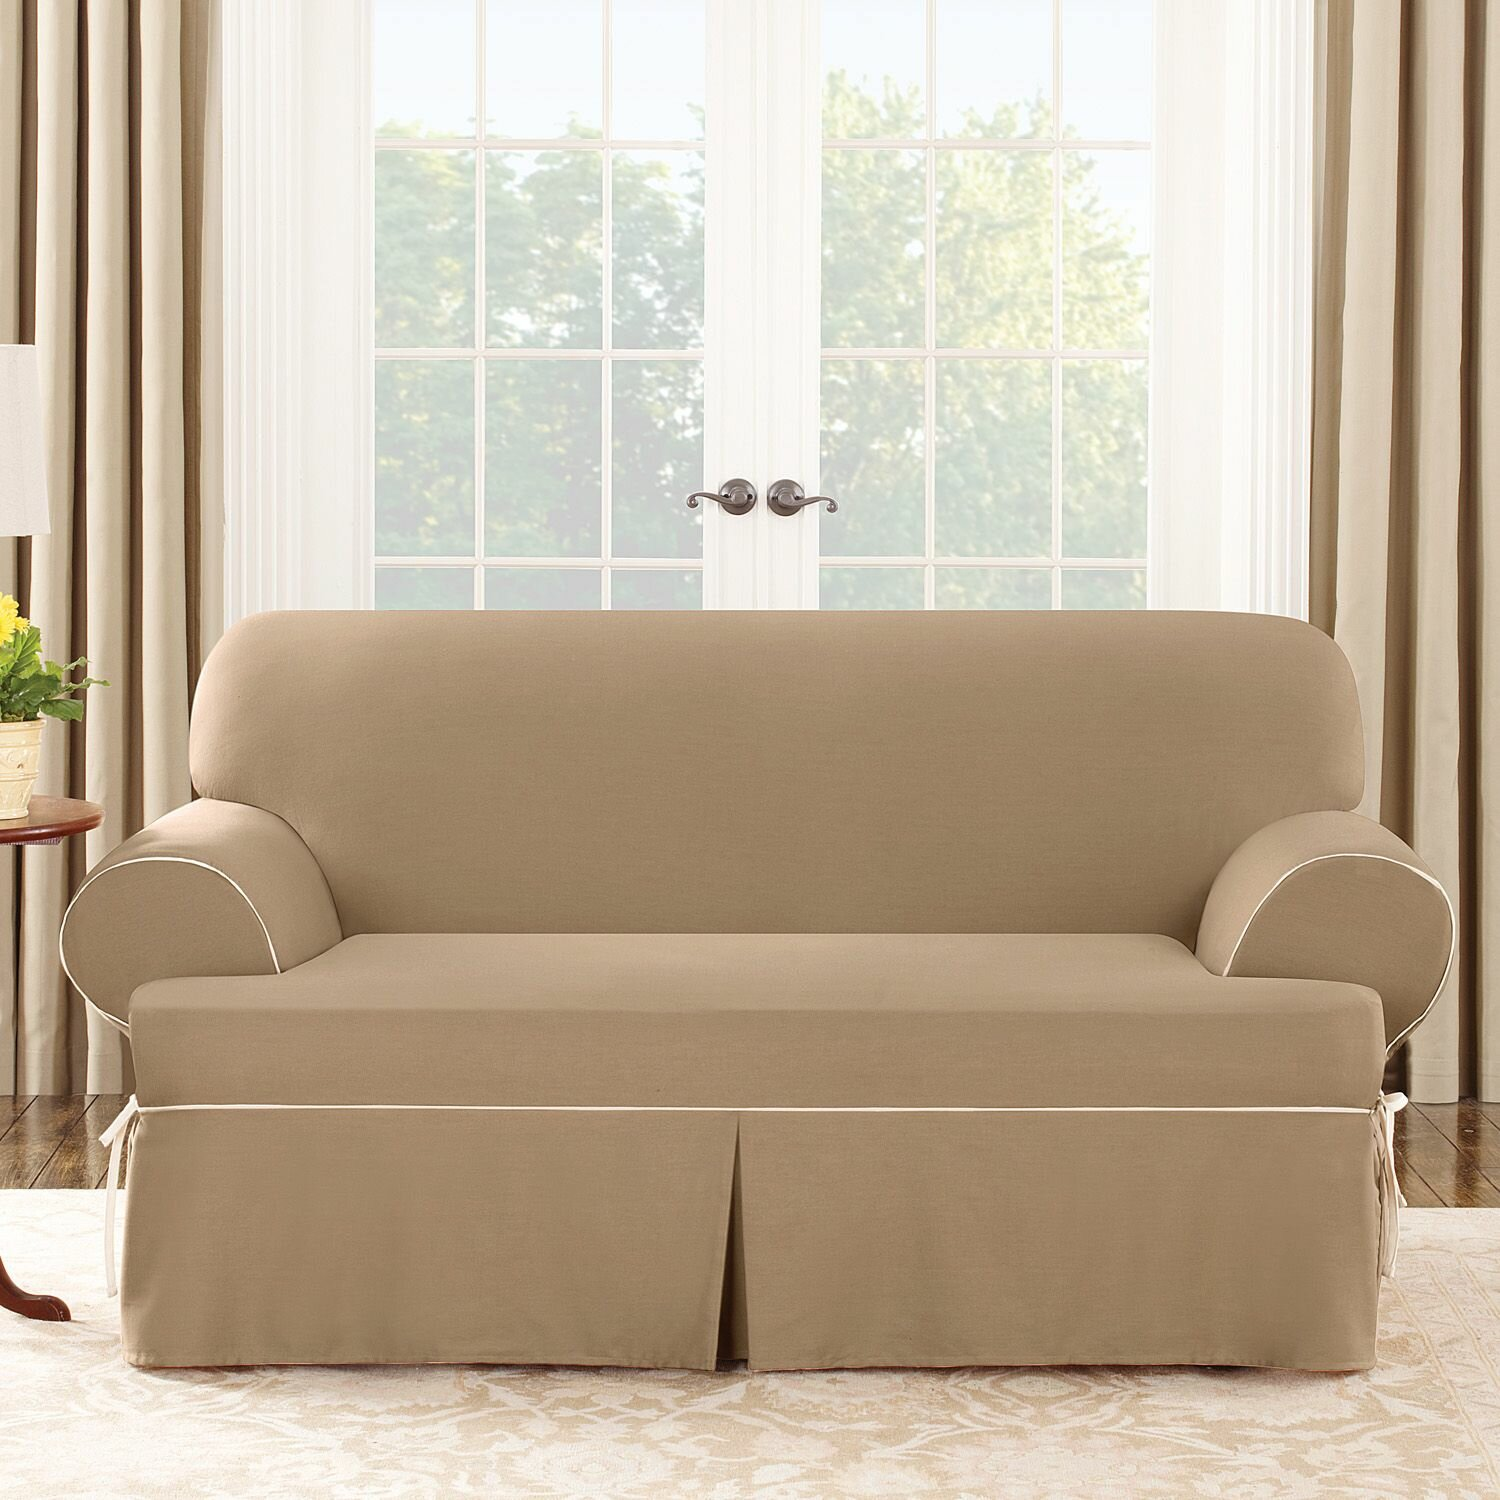 Sofas With Slip Covers: Sure Fit Cotton Duck Loveseat T-Cushion Slipcover